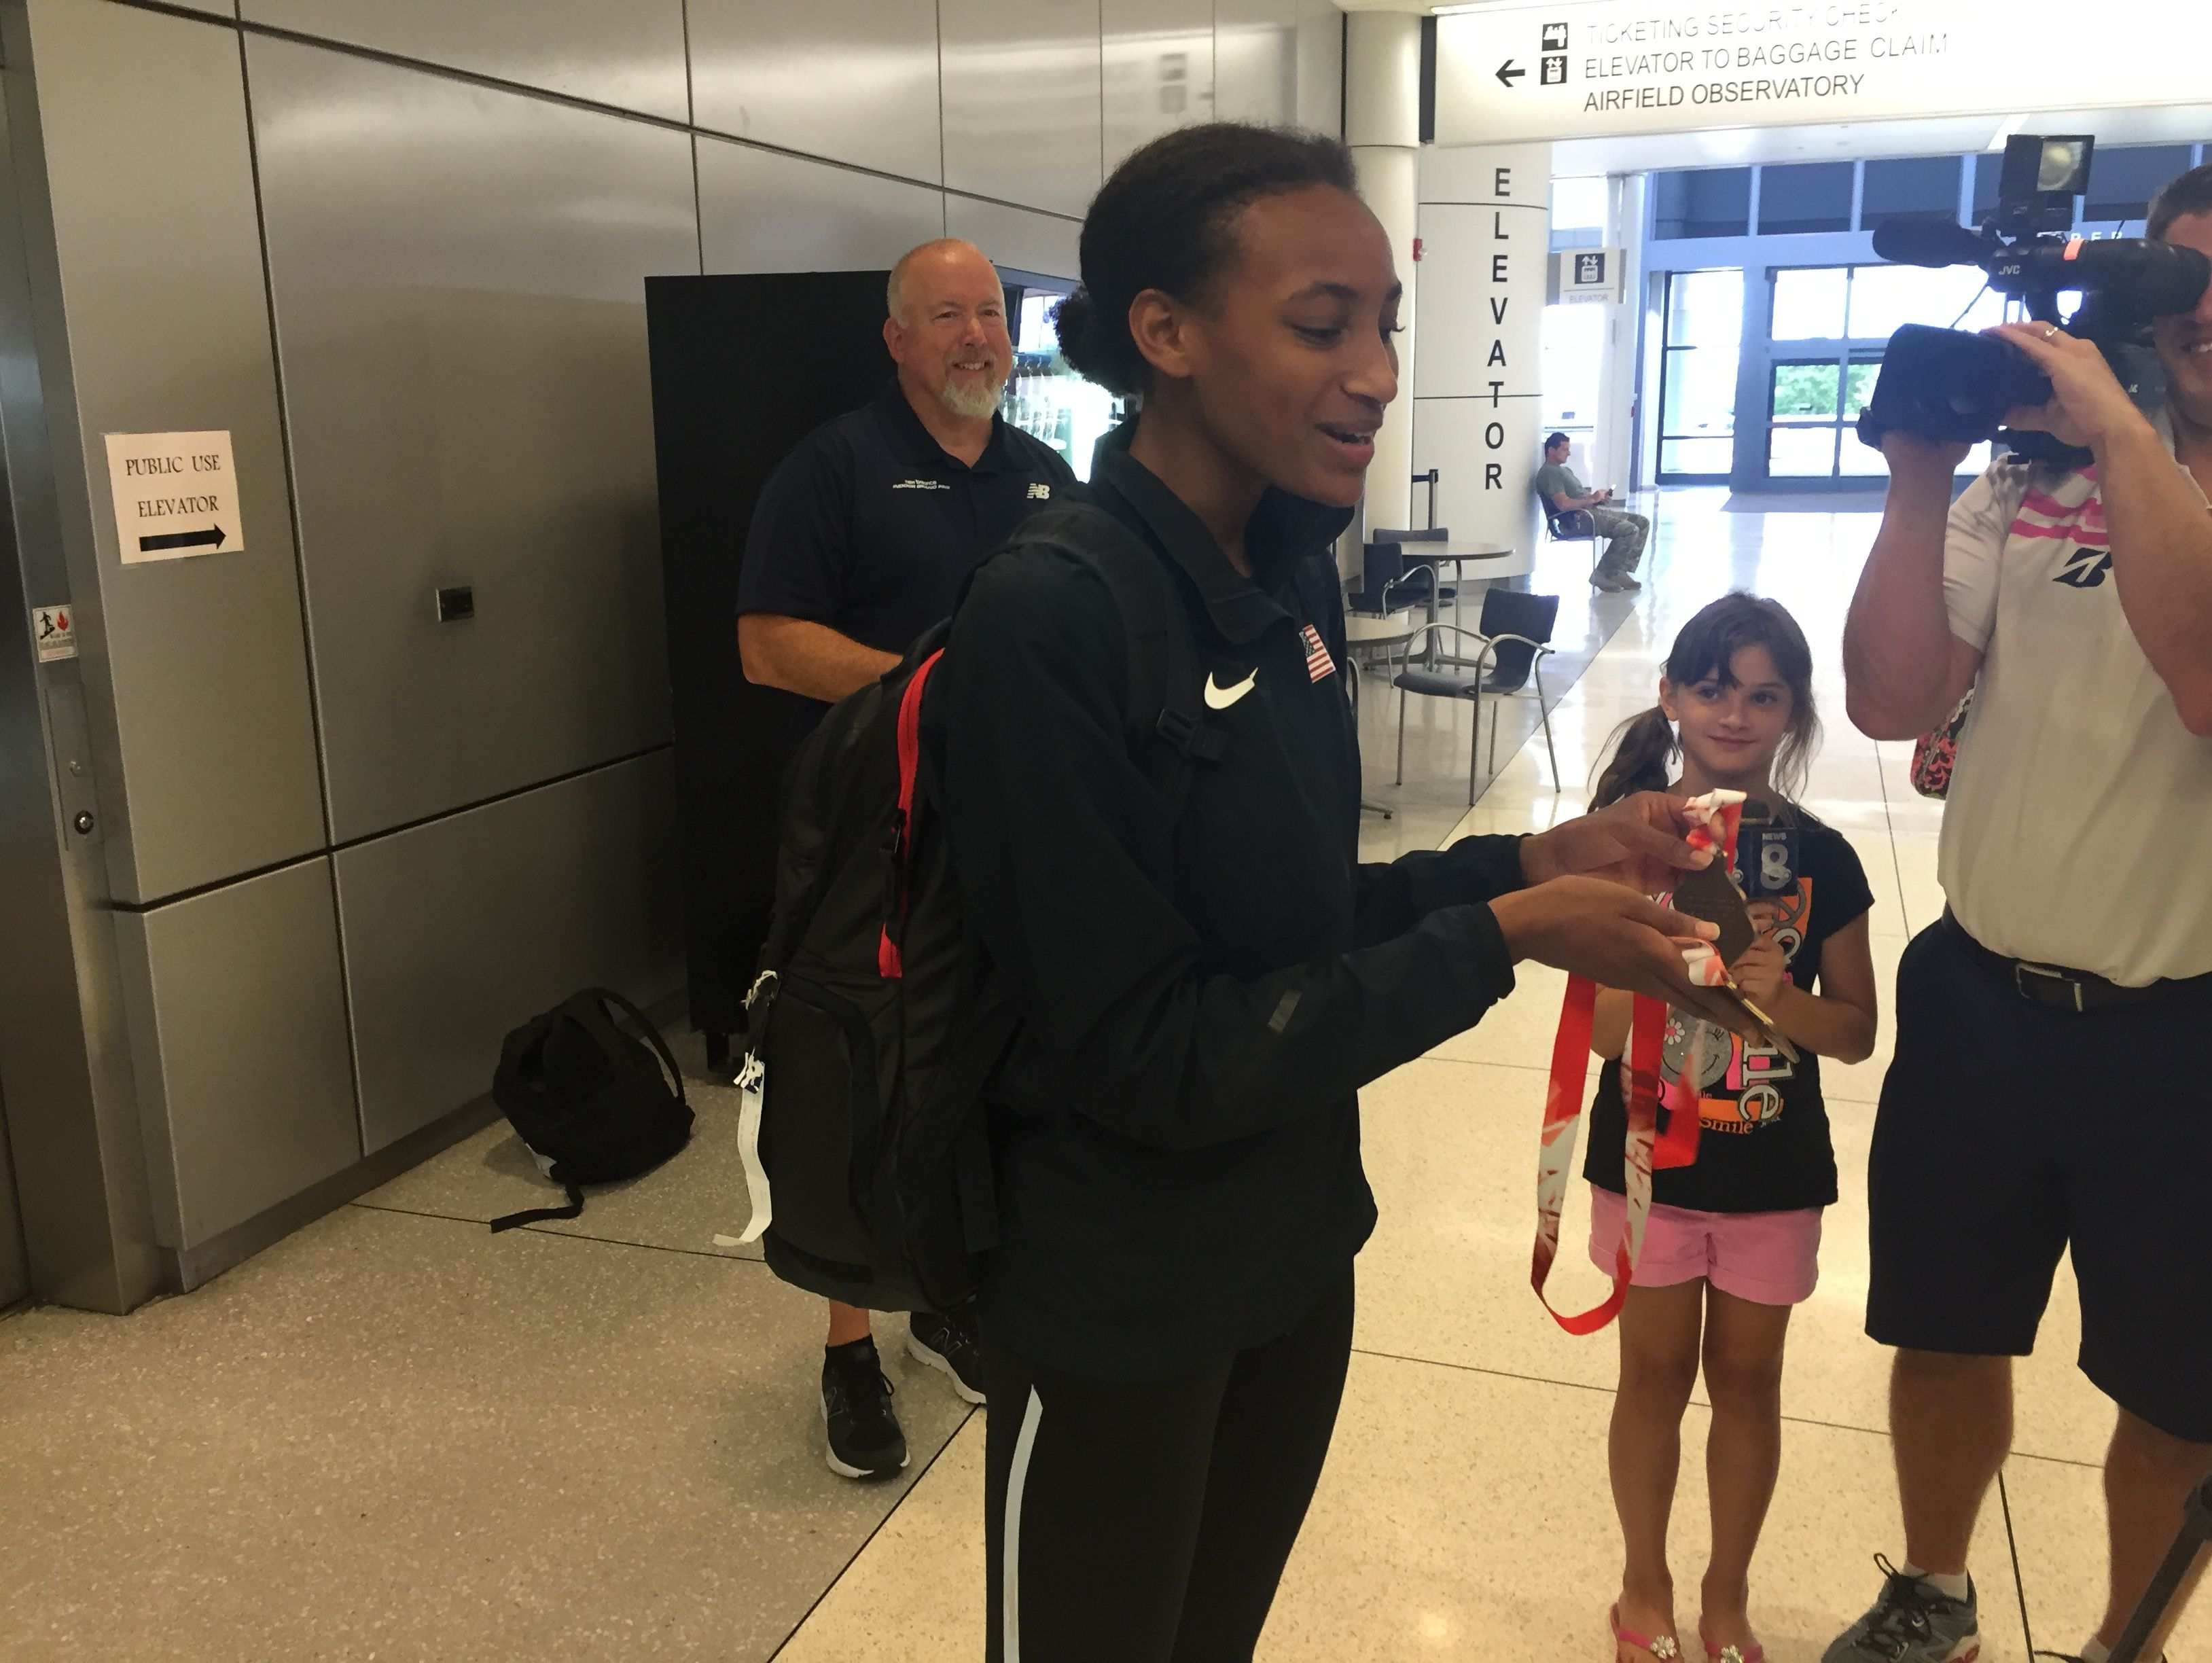 Rush-Henrietta rising senior Sammy Watson was greeted by family, friends, coaches and media at Rochester International Airport on Tuesday. Watson won the IAAF World U20 women's 800-meter final last week in Poland.